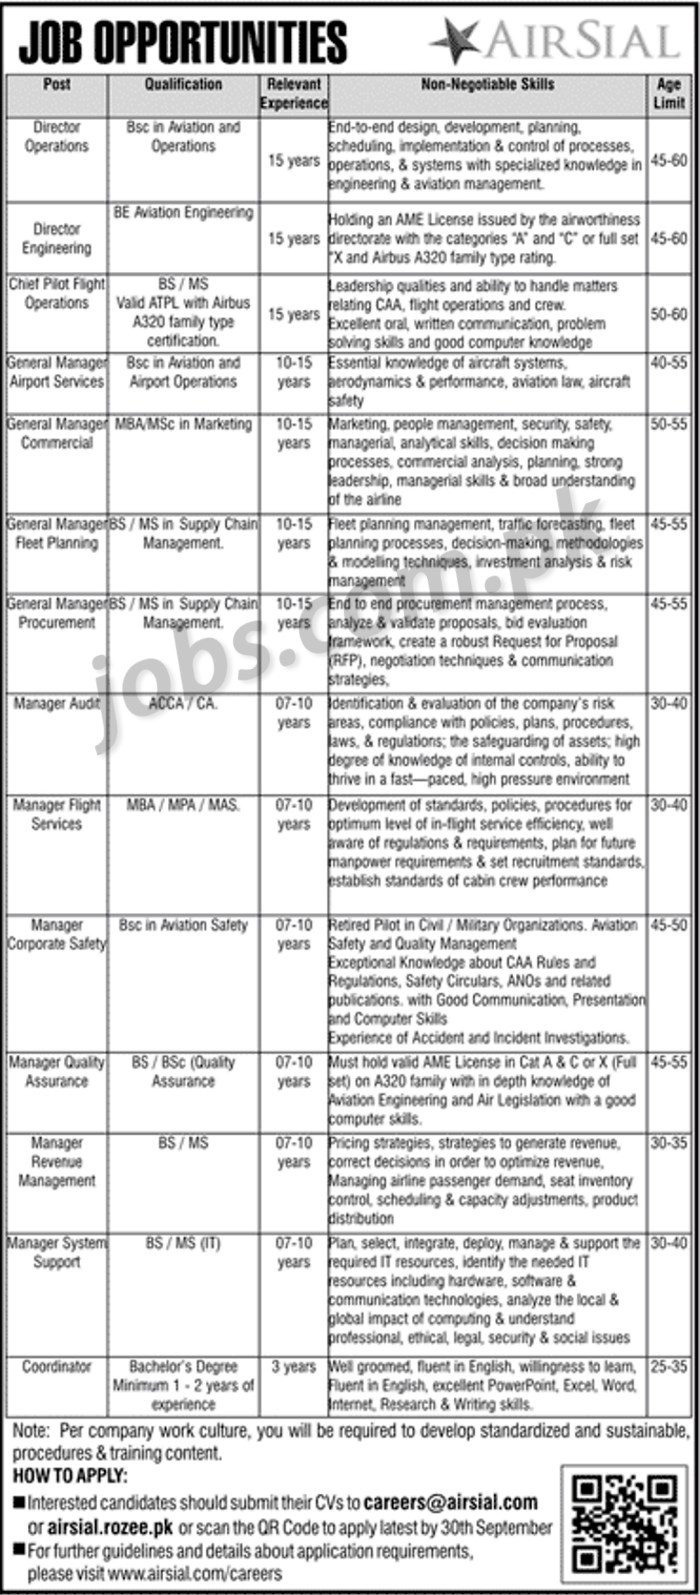 AirSial-jn Online Form Submit Govt Job on hospital pakpattan, district thatta, 12th pass uttrakhand, application form, 10th pass raliway, 10th 12th qualification,